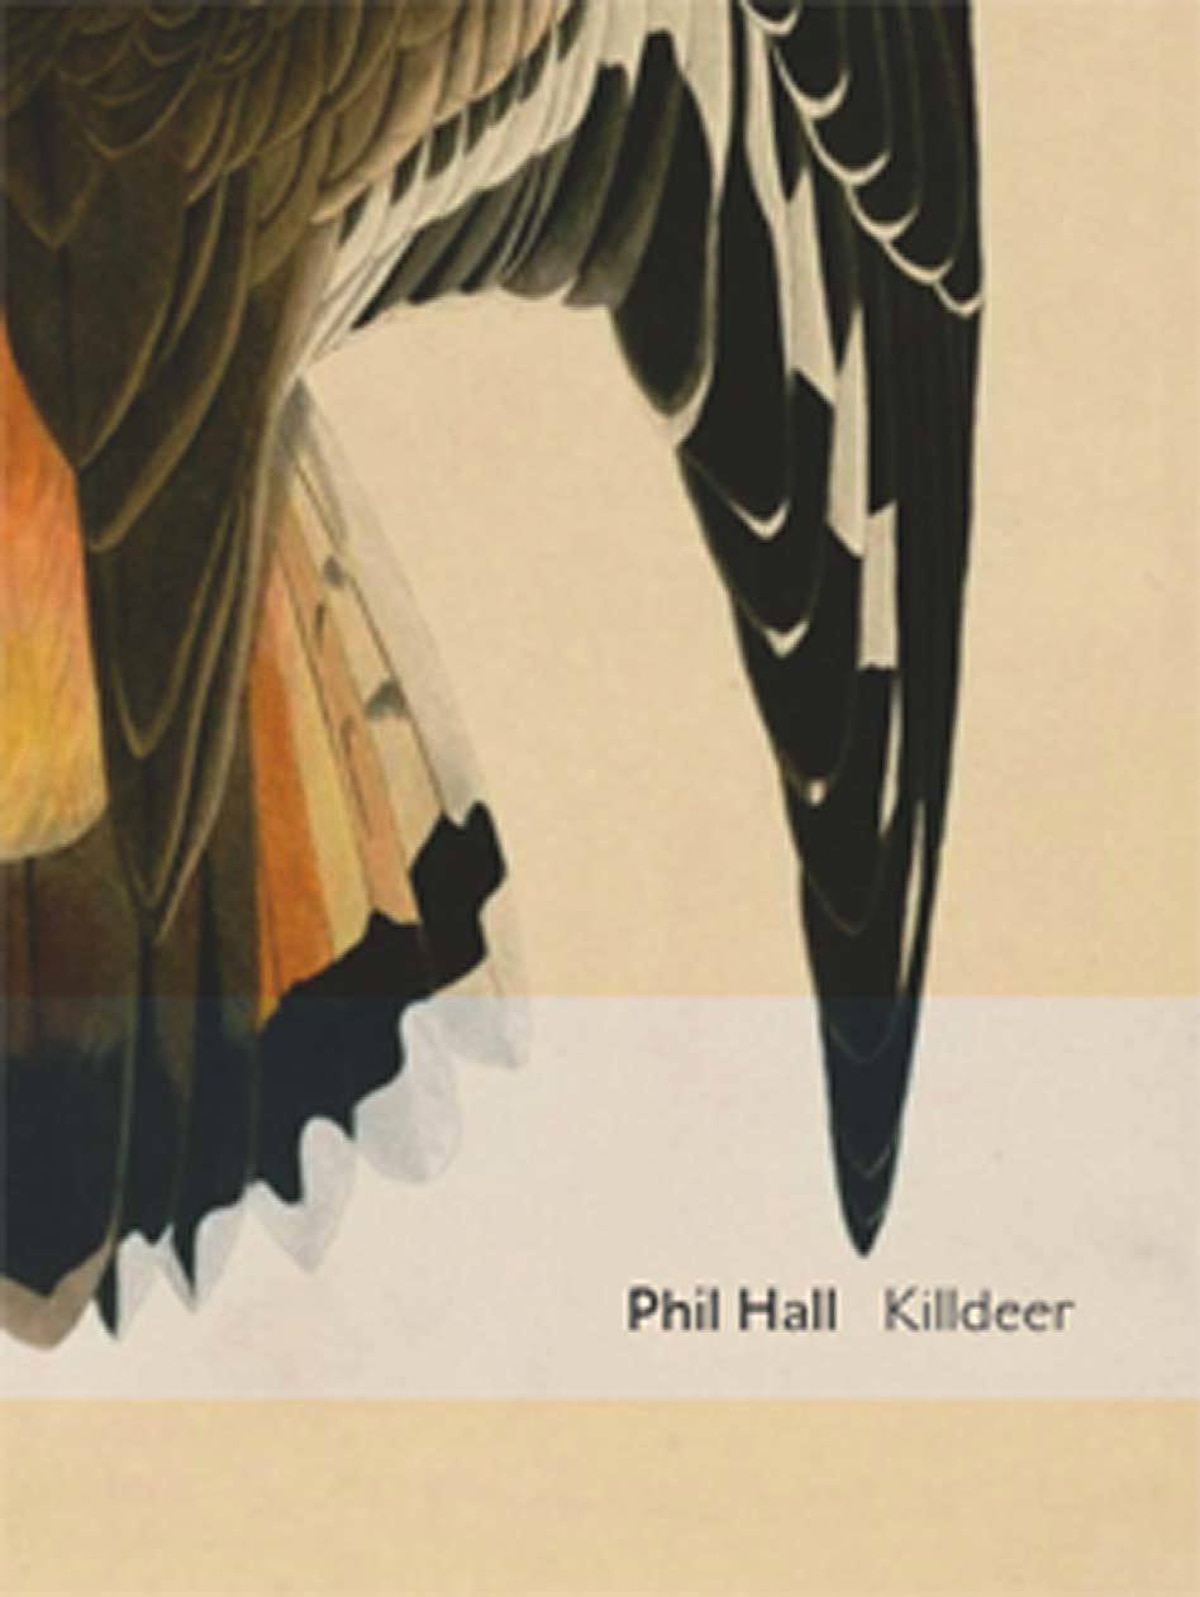 KILLDEER By Phil Hall (BookThug) Phil Hall's Governor-General's Award-winning Killdeer is a literary memoir in the form of a lyrical essay, which he rescues from its excesses and turns into something as adventurous as it is readable. Hall is one of the most inventive, and least pretentious, poets we have. If he's not a household name yet, he deserves to be. – Paul Vermeersch